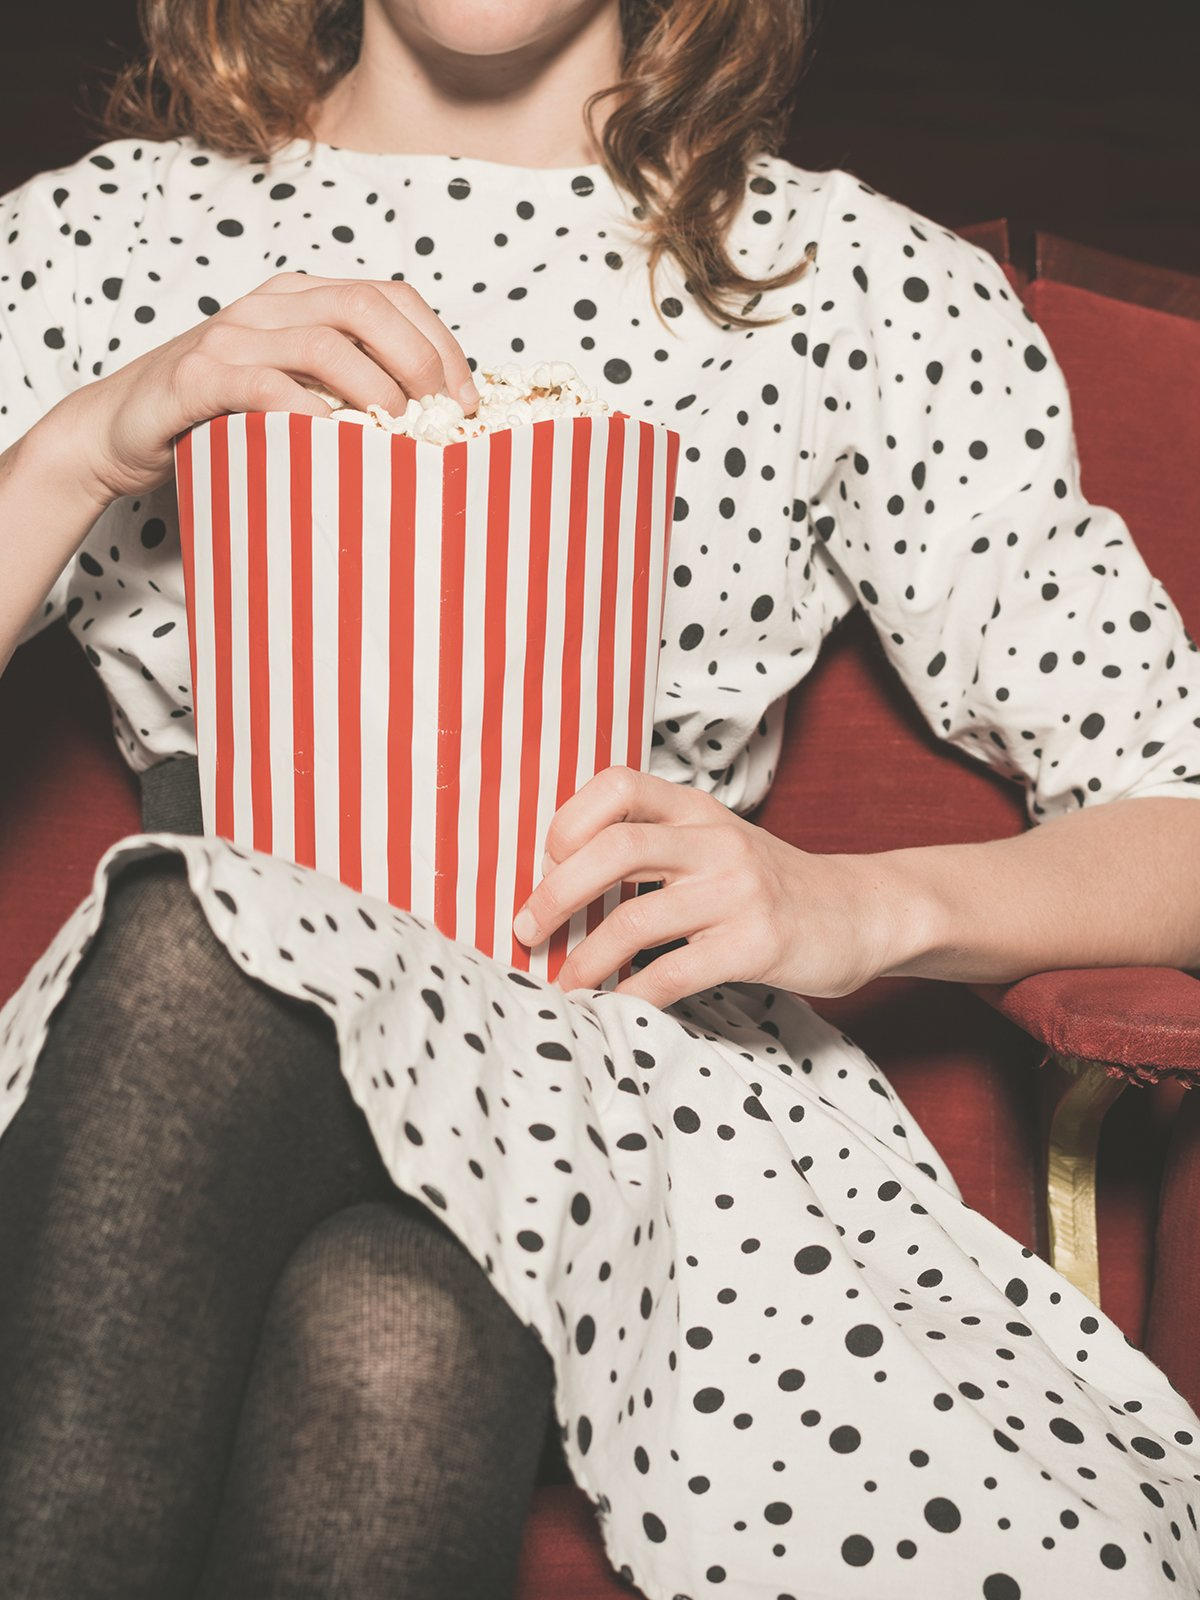 Person eating popcorn